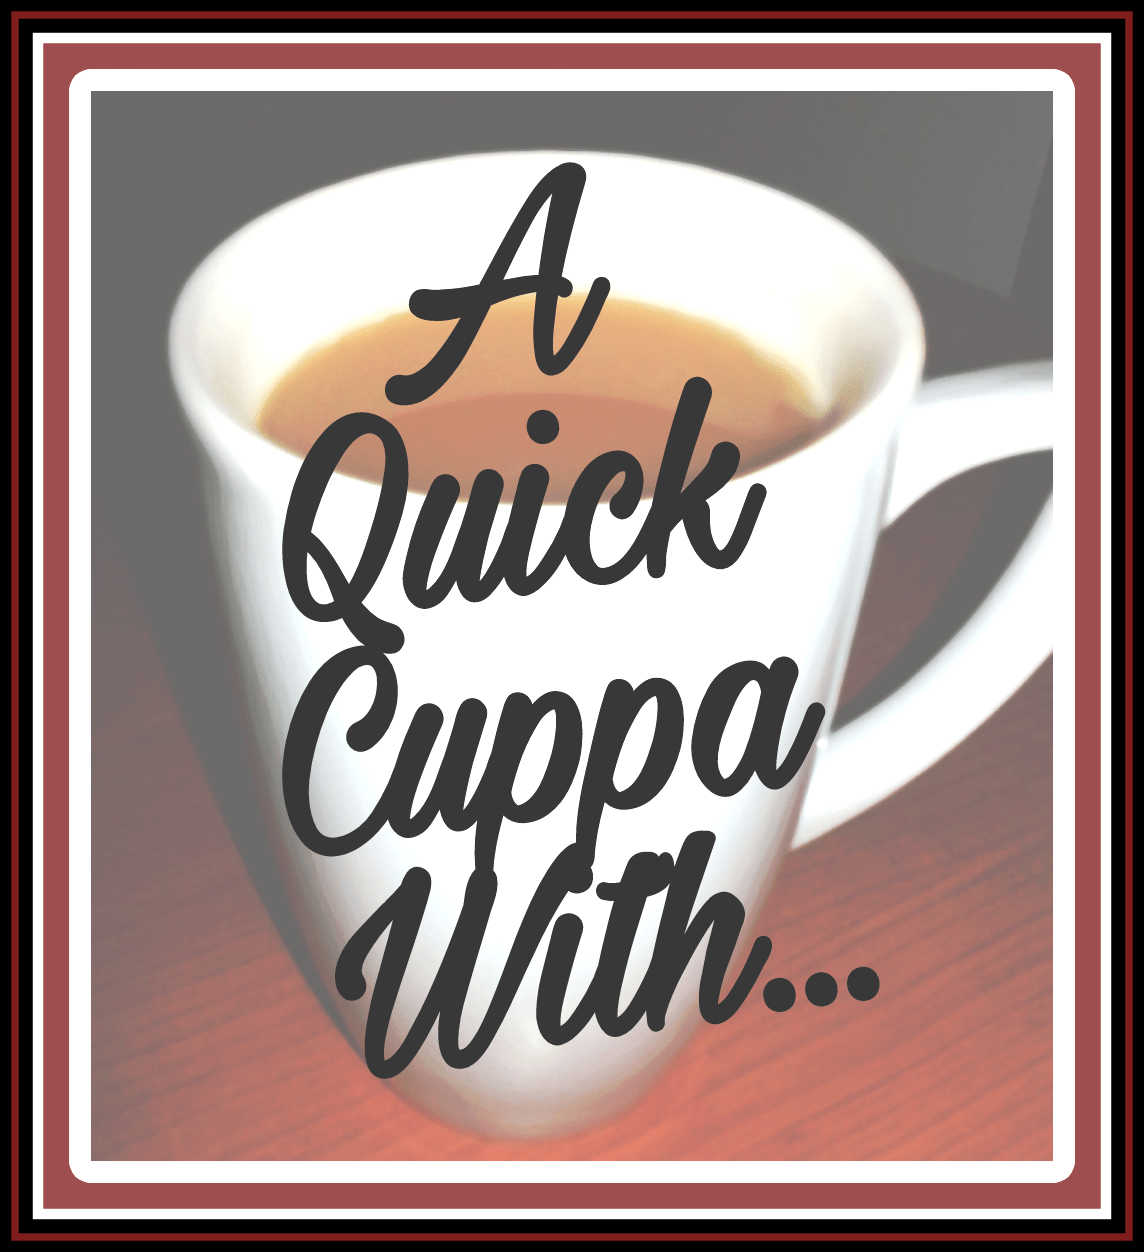 Introducing My Guest Post Series: A Quick Cuppa With…